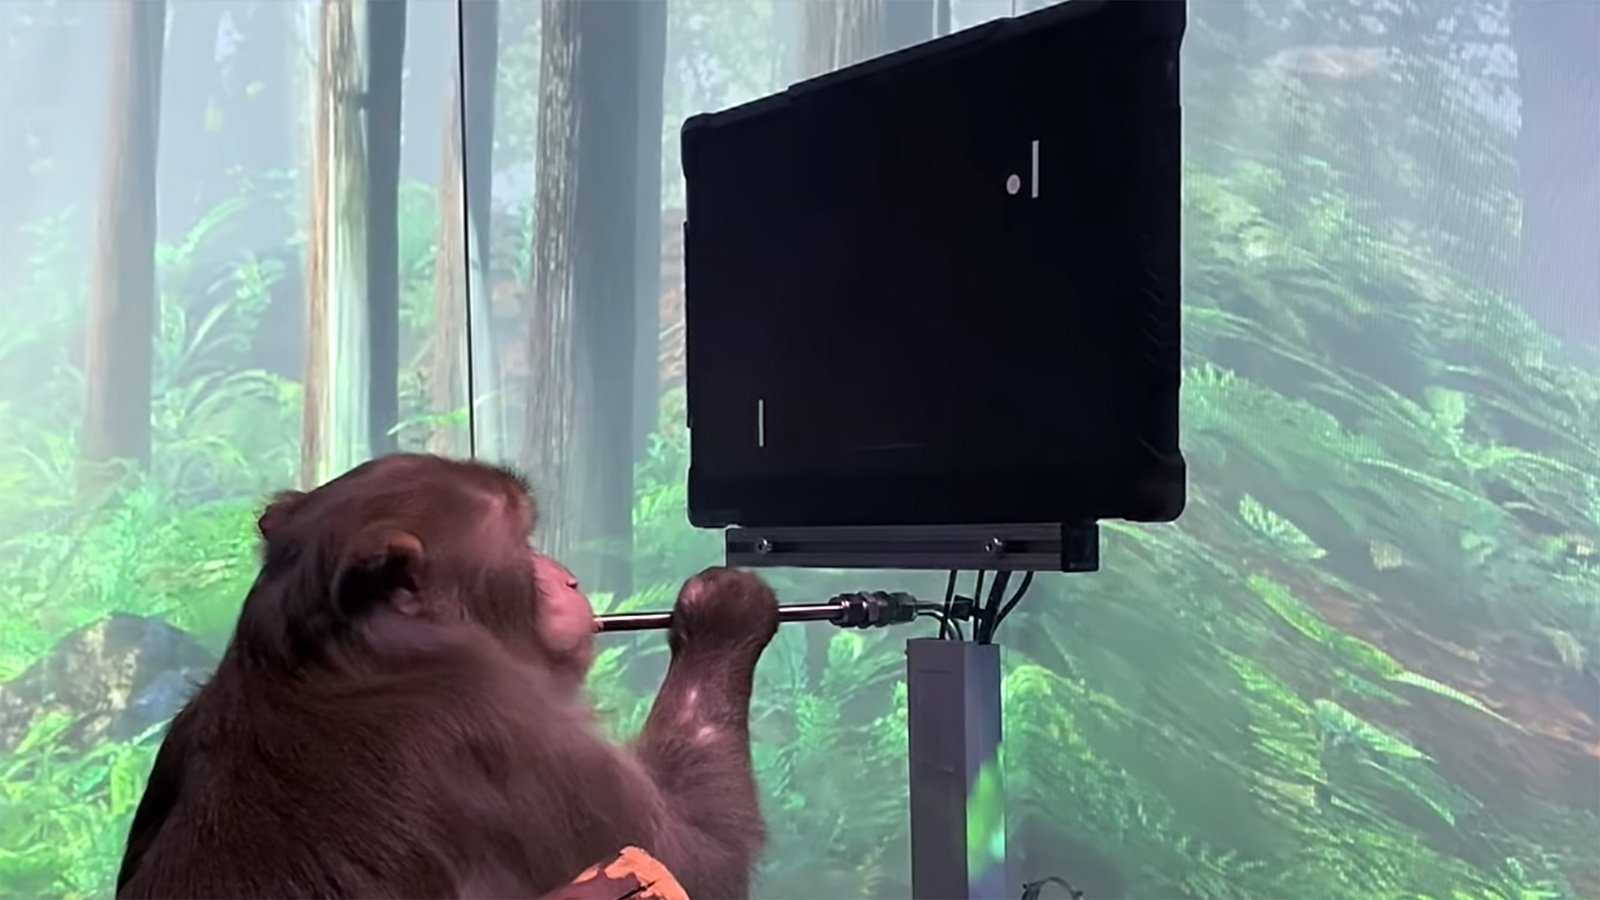 Watch: Monkey Uses Elon Musk's Neuralink To Play Pong With Its Mind